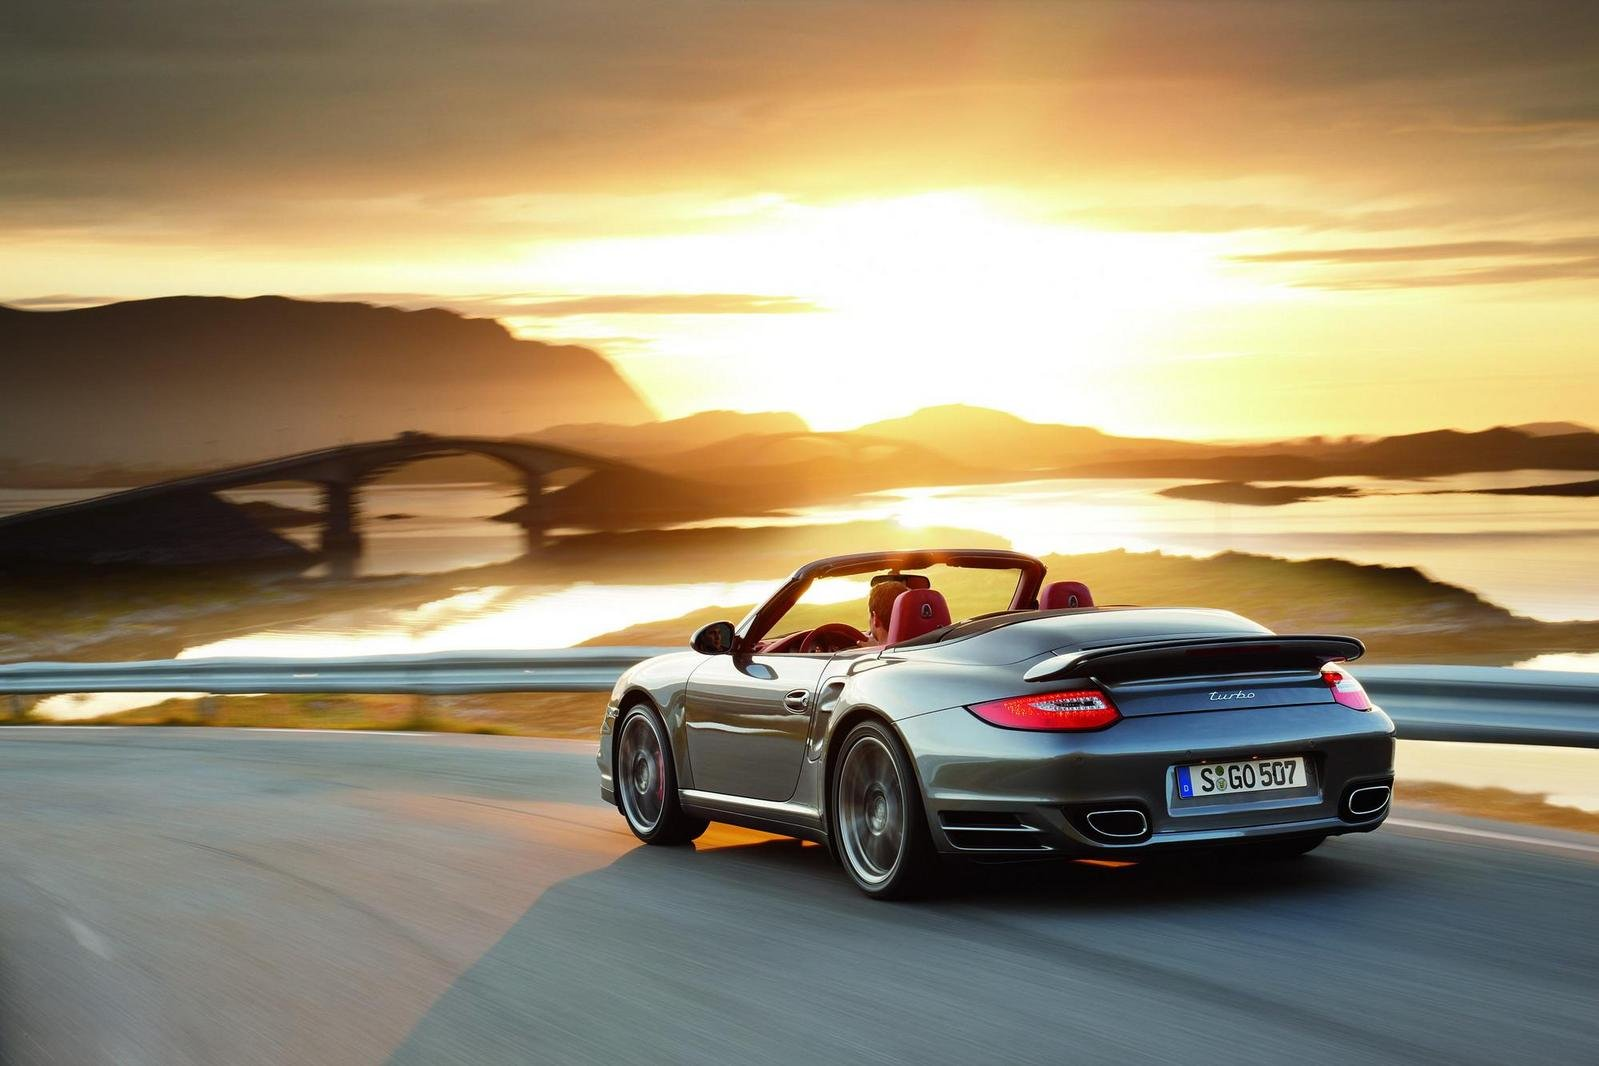 2010 porsche 911 turbo picture 326741 car review top speed. Black Bedroom Furniture Sets. Home Design Ideas